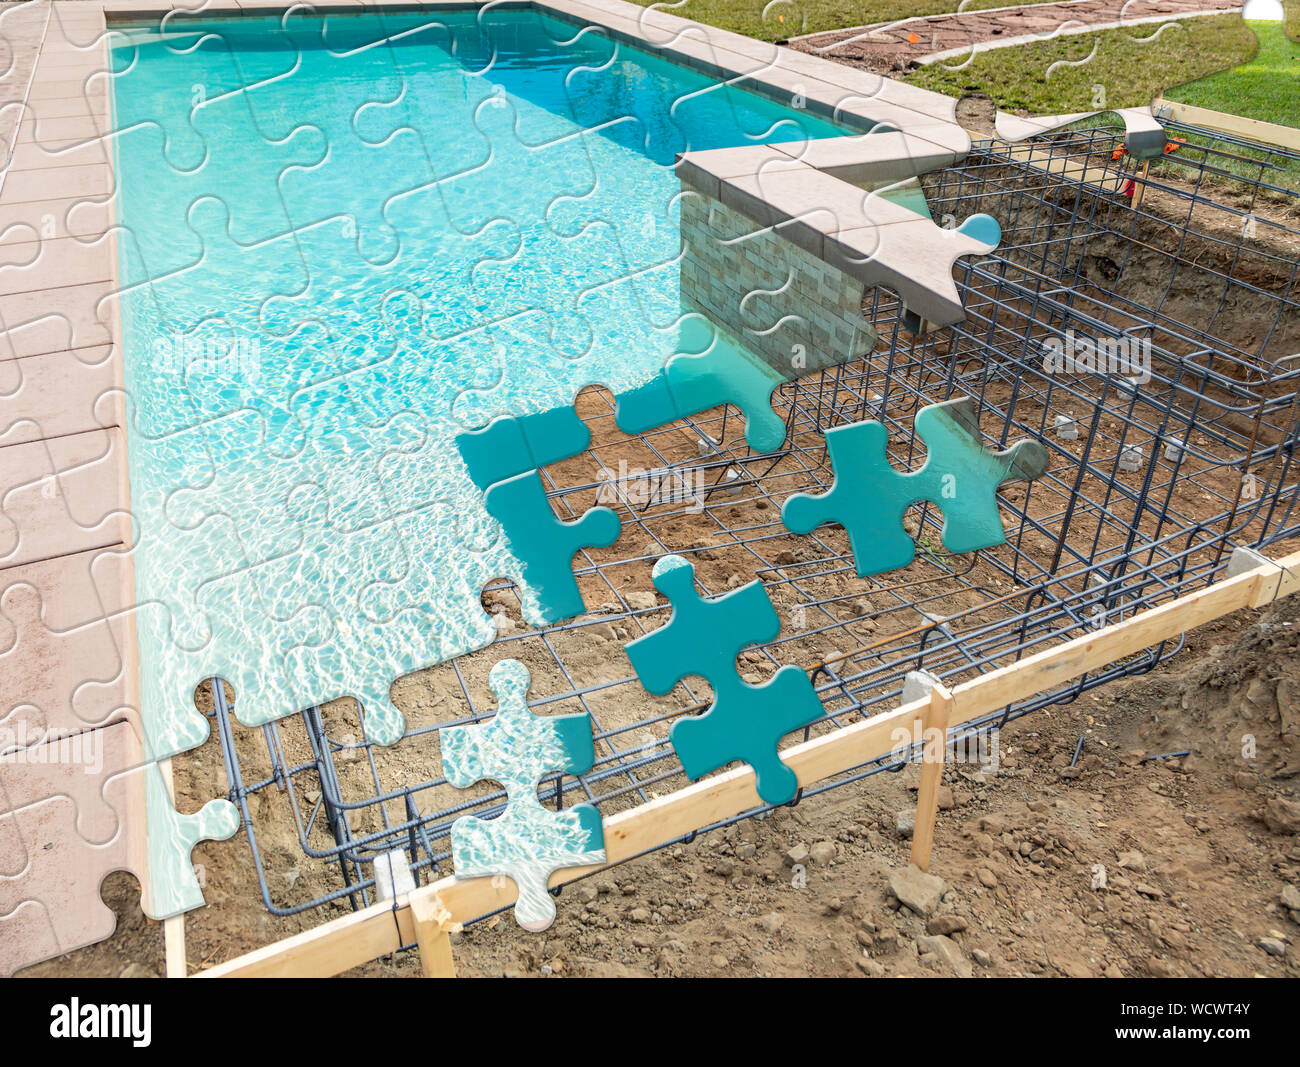 Puzzle Pieces Fitting Together Revealing Finished Pool Build Over Construction. Stock Photo